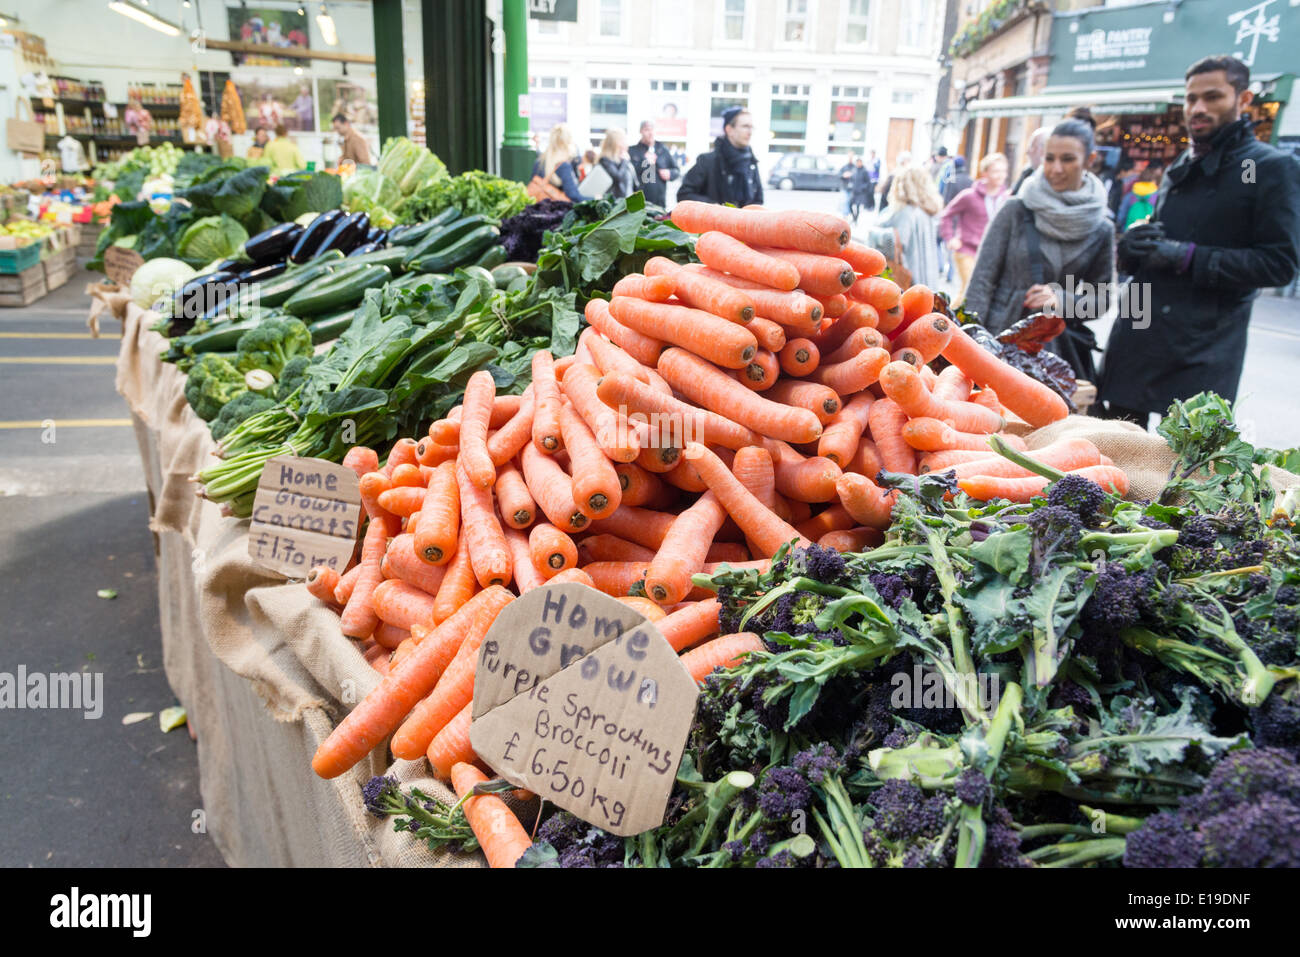 Vegetable stall in Borough Market, London, England, UK - Stock Image